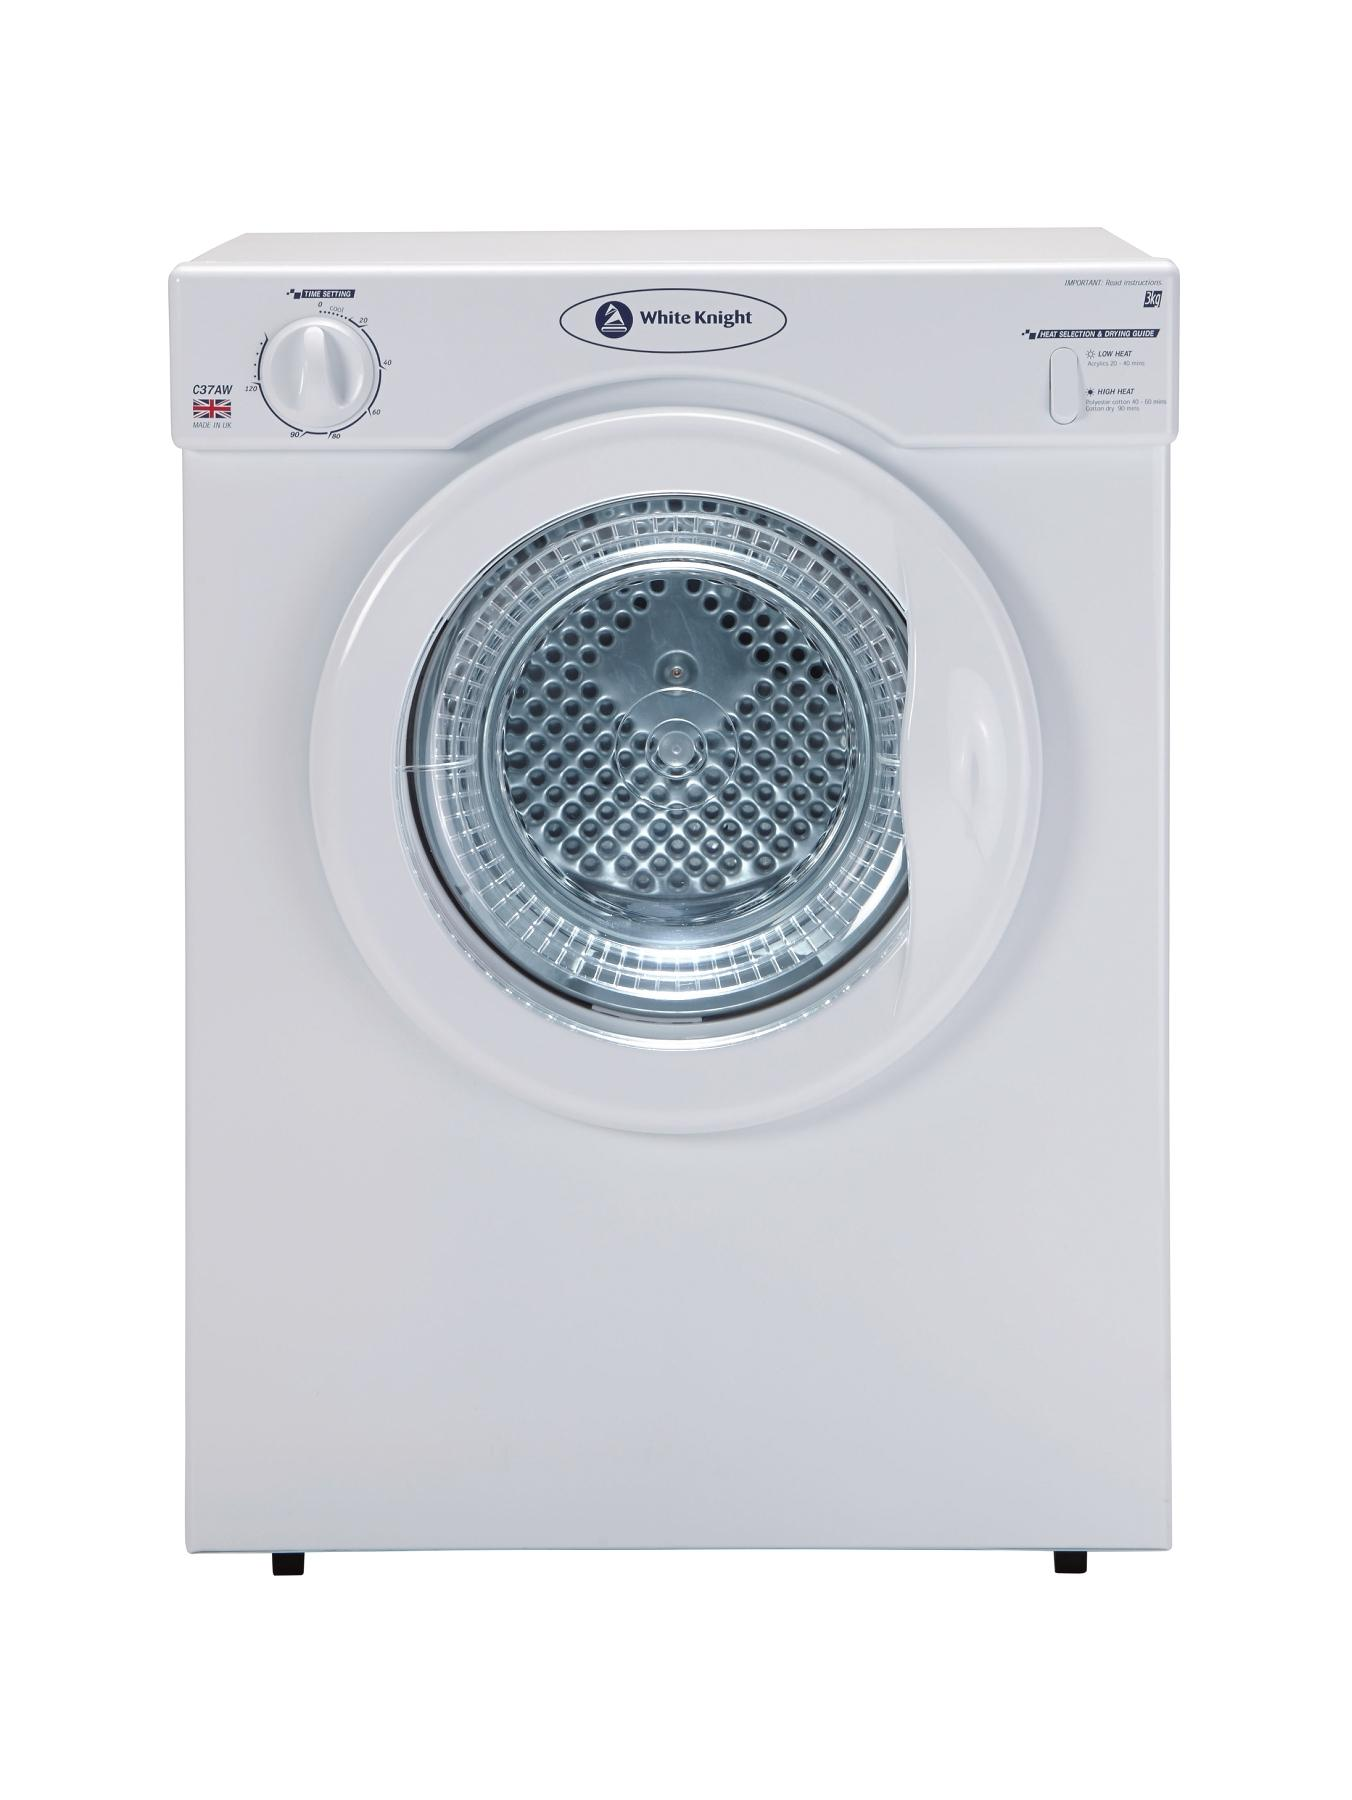 Tumble dryers littlewoods catalogue home shopping - Tumble dryer for small space pict ...